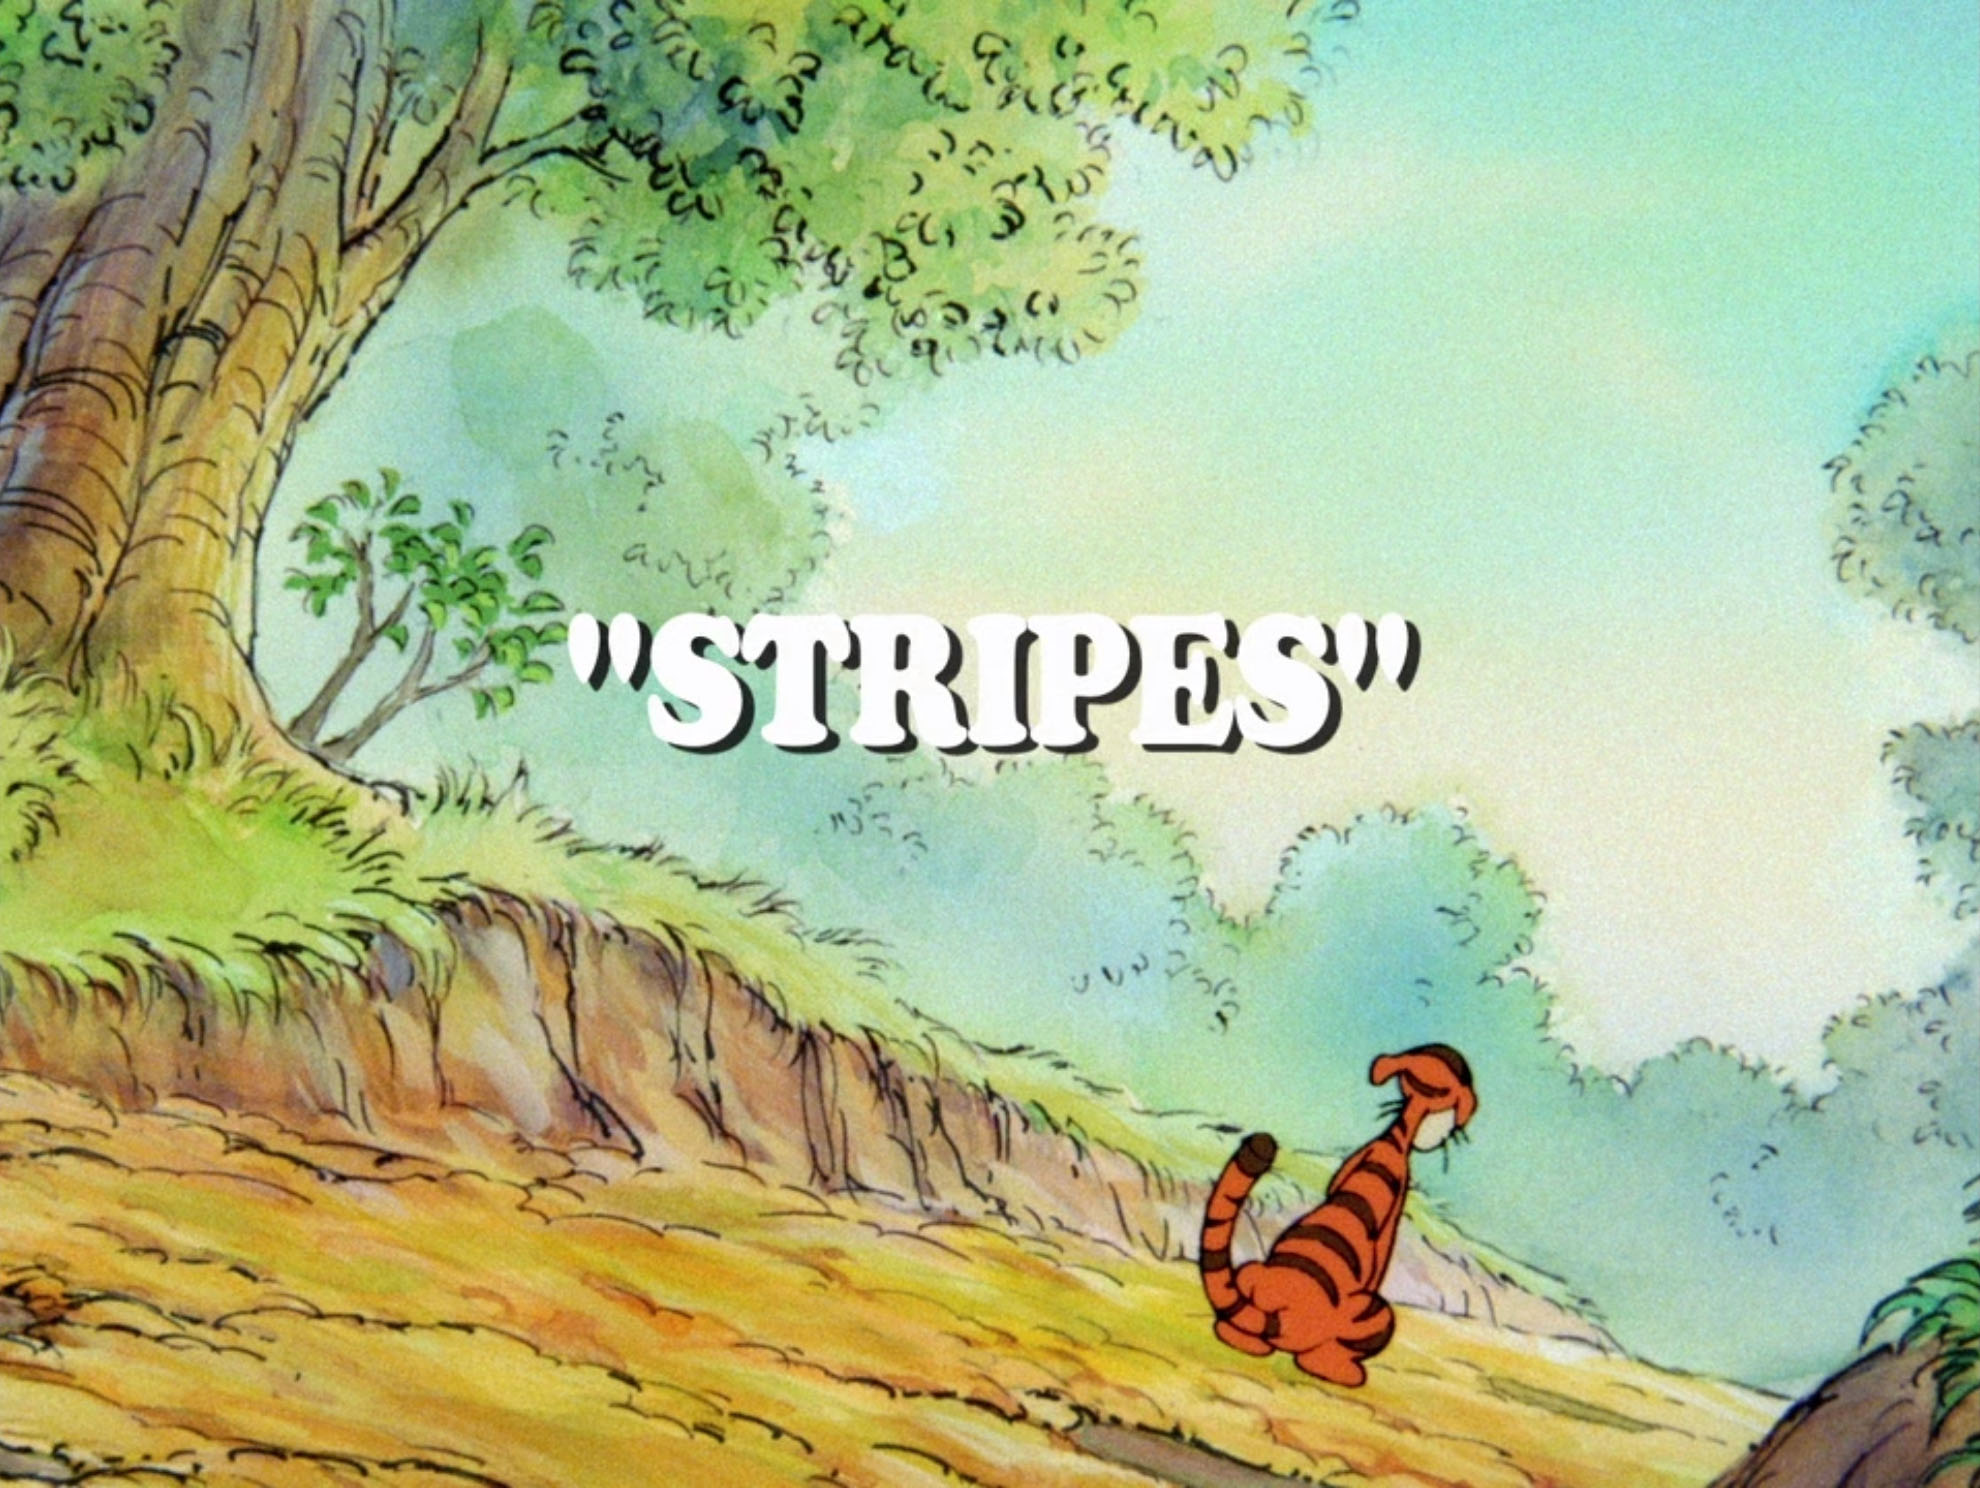 File:Stripes.jpg